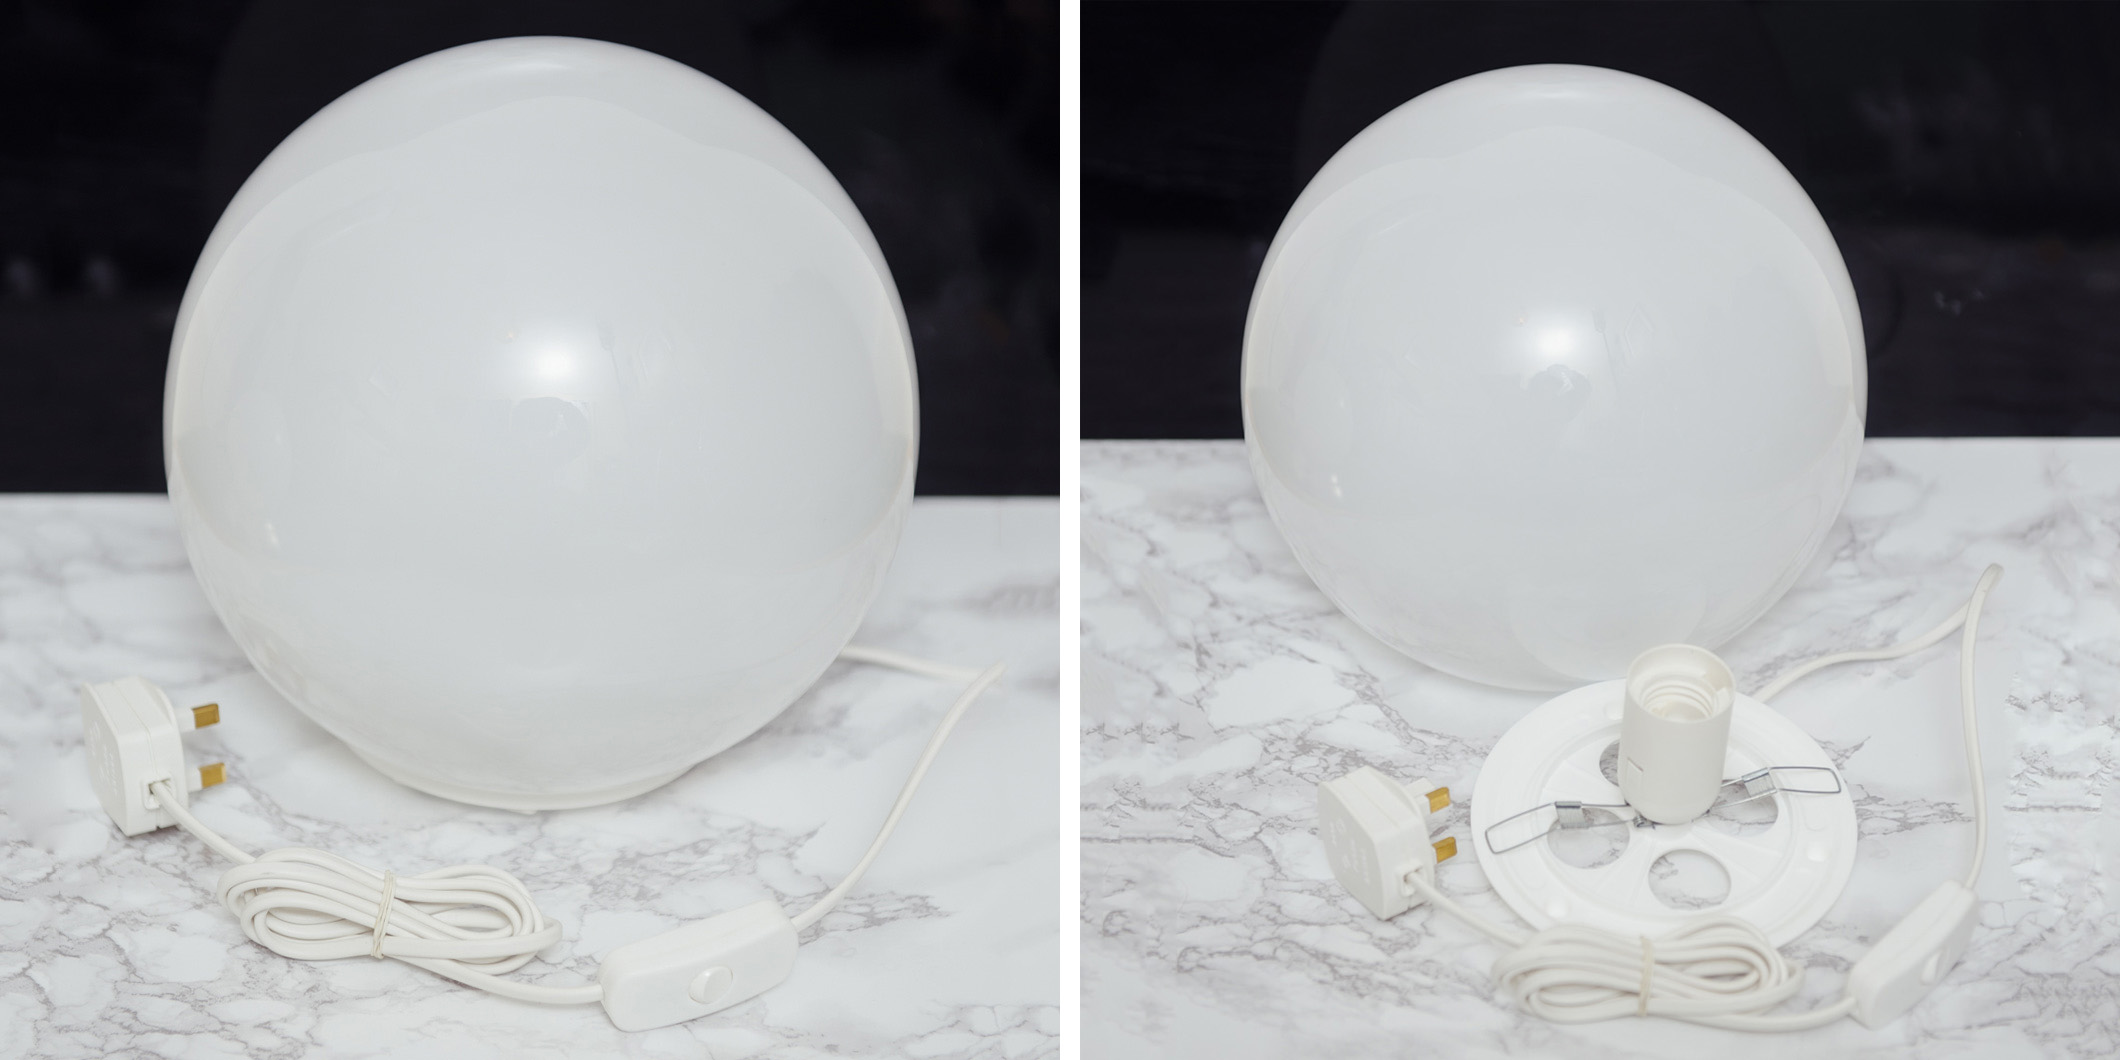 Large table lamp dome.